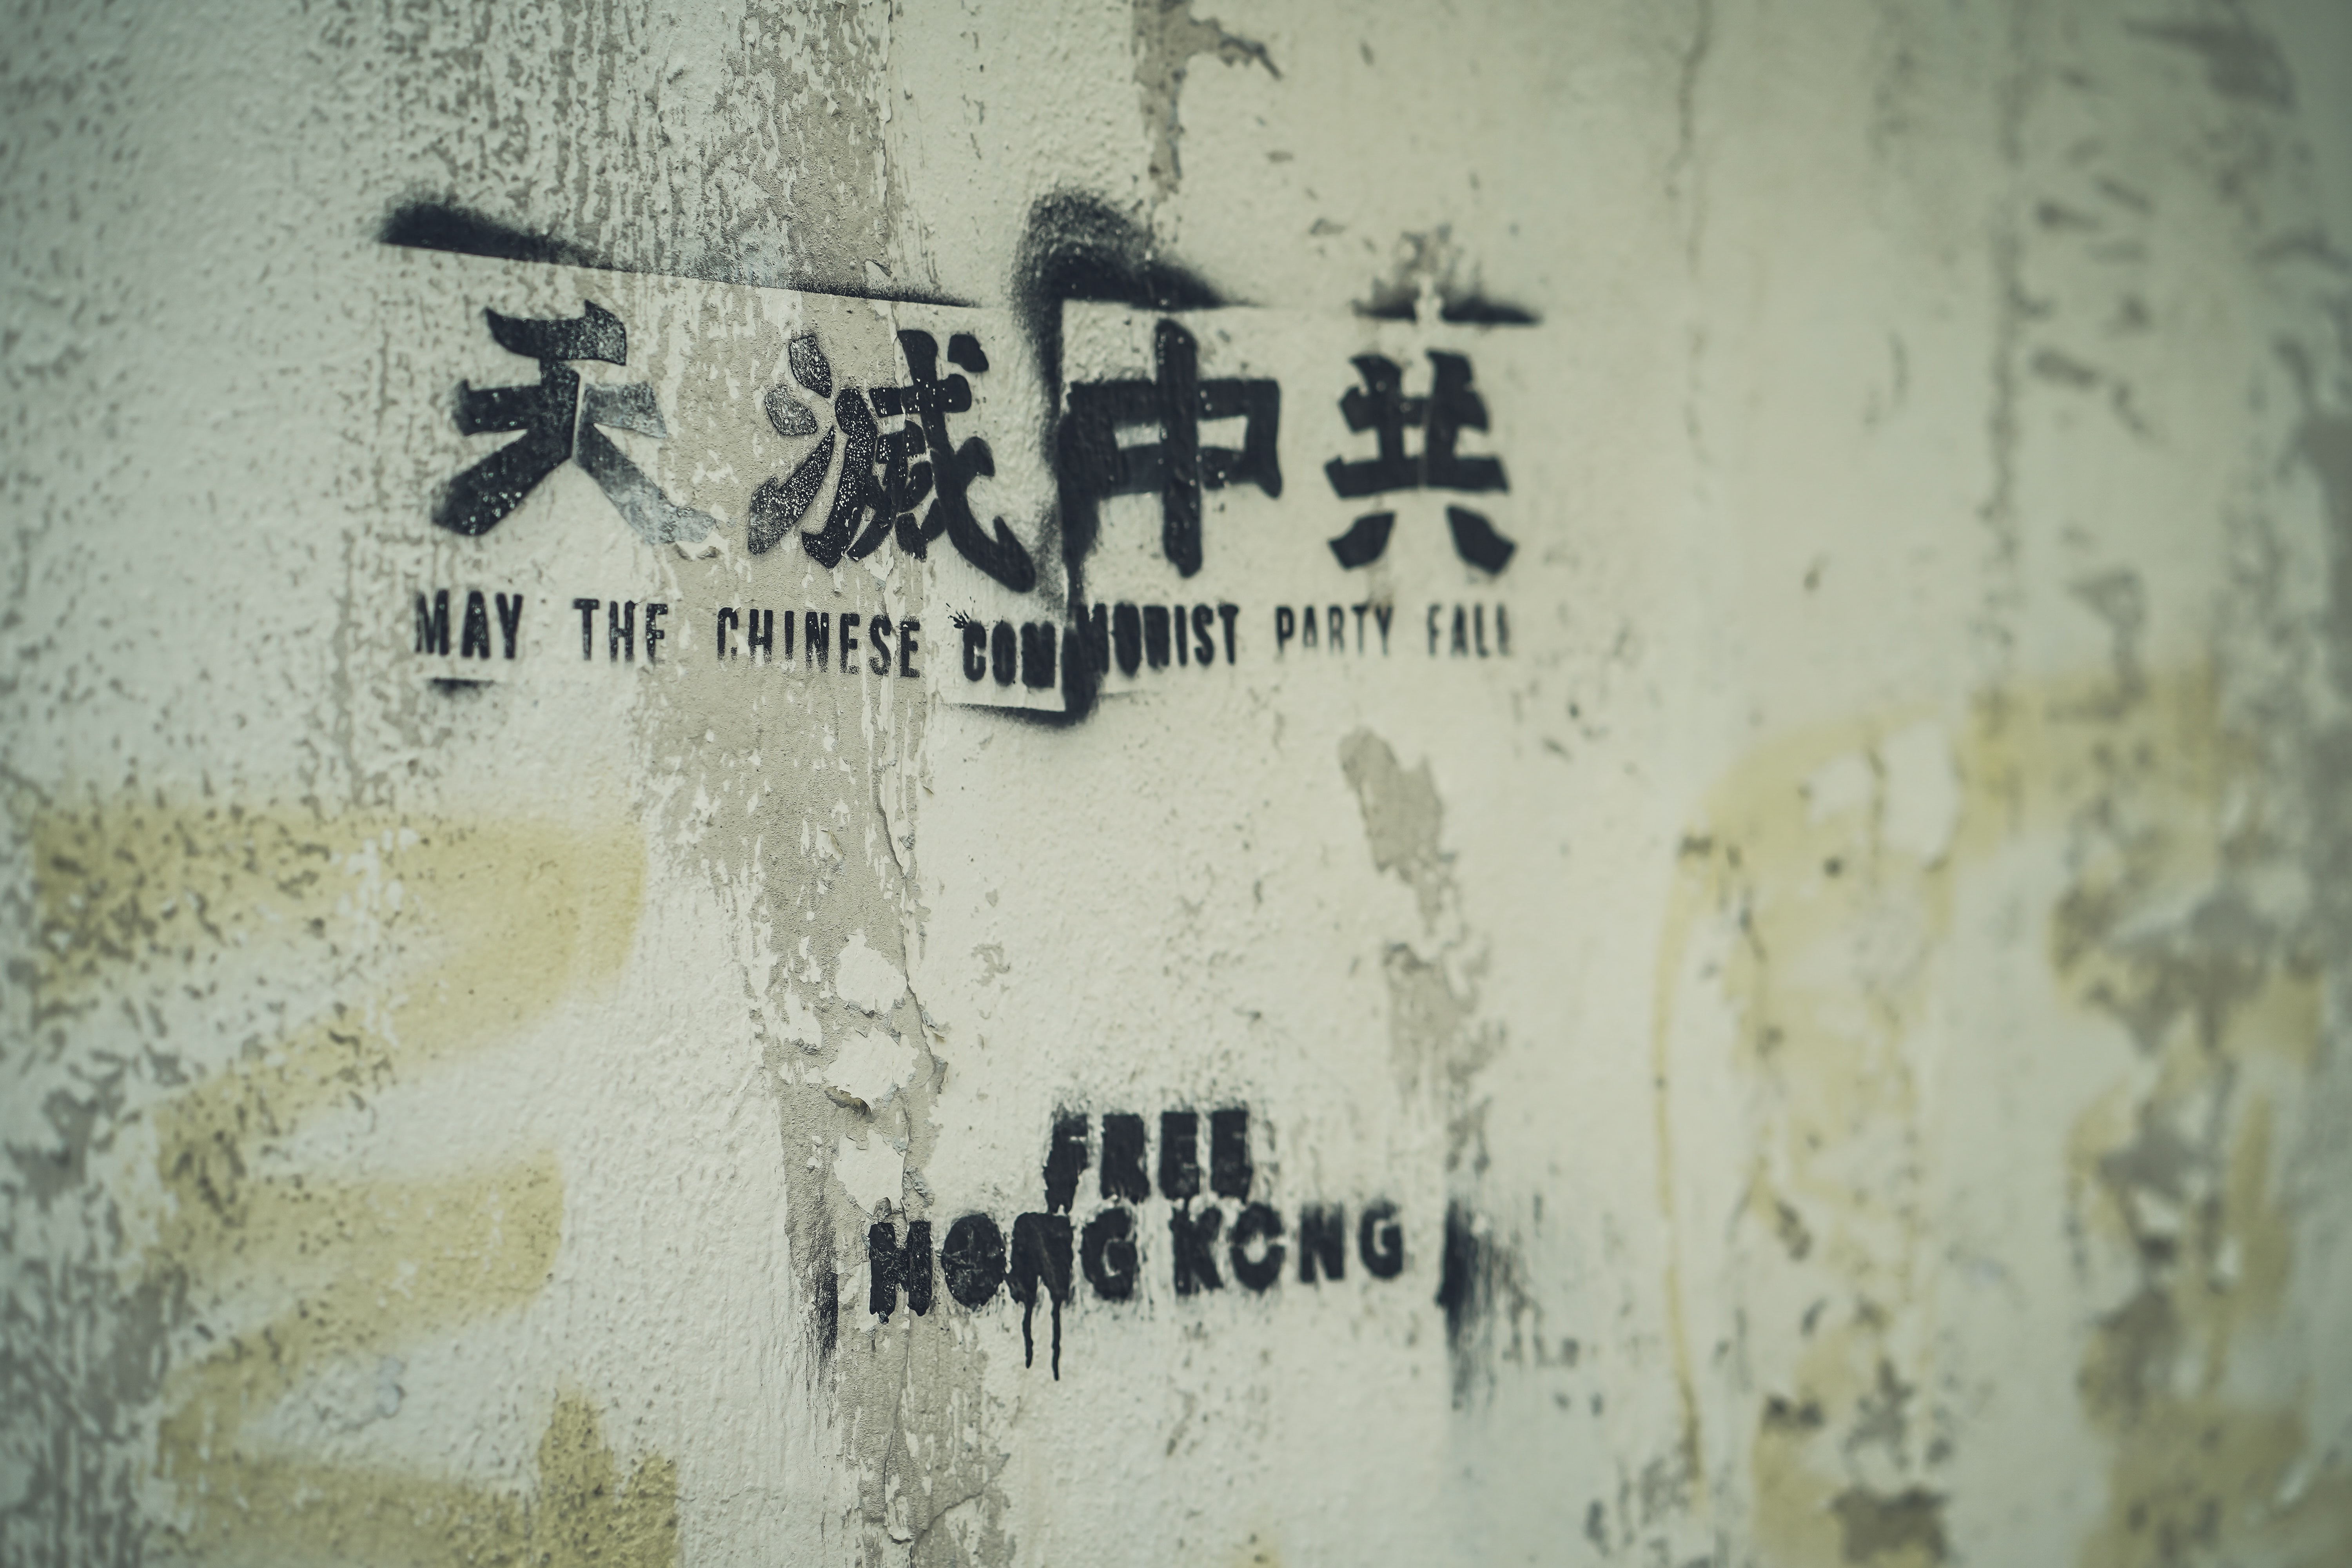 Pulverizing Hong Kong's autonomy: China's security strategy | LSE Human Rights